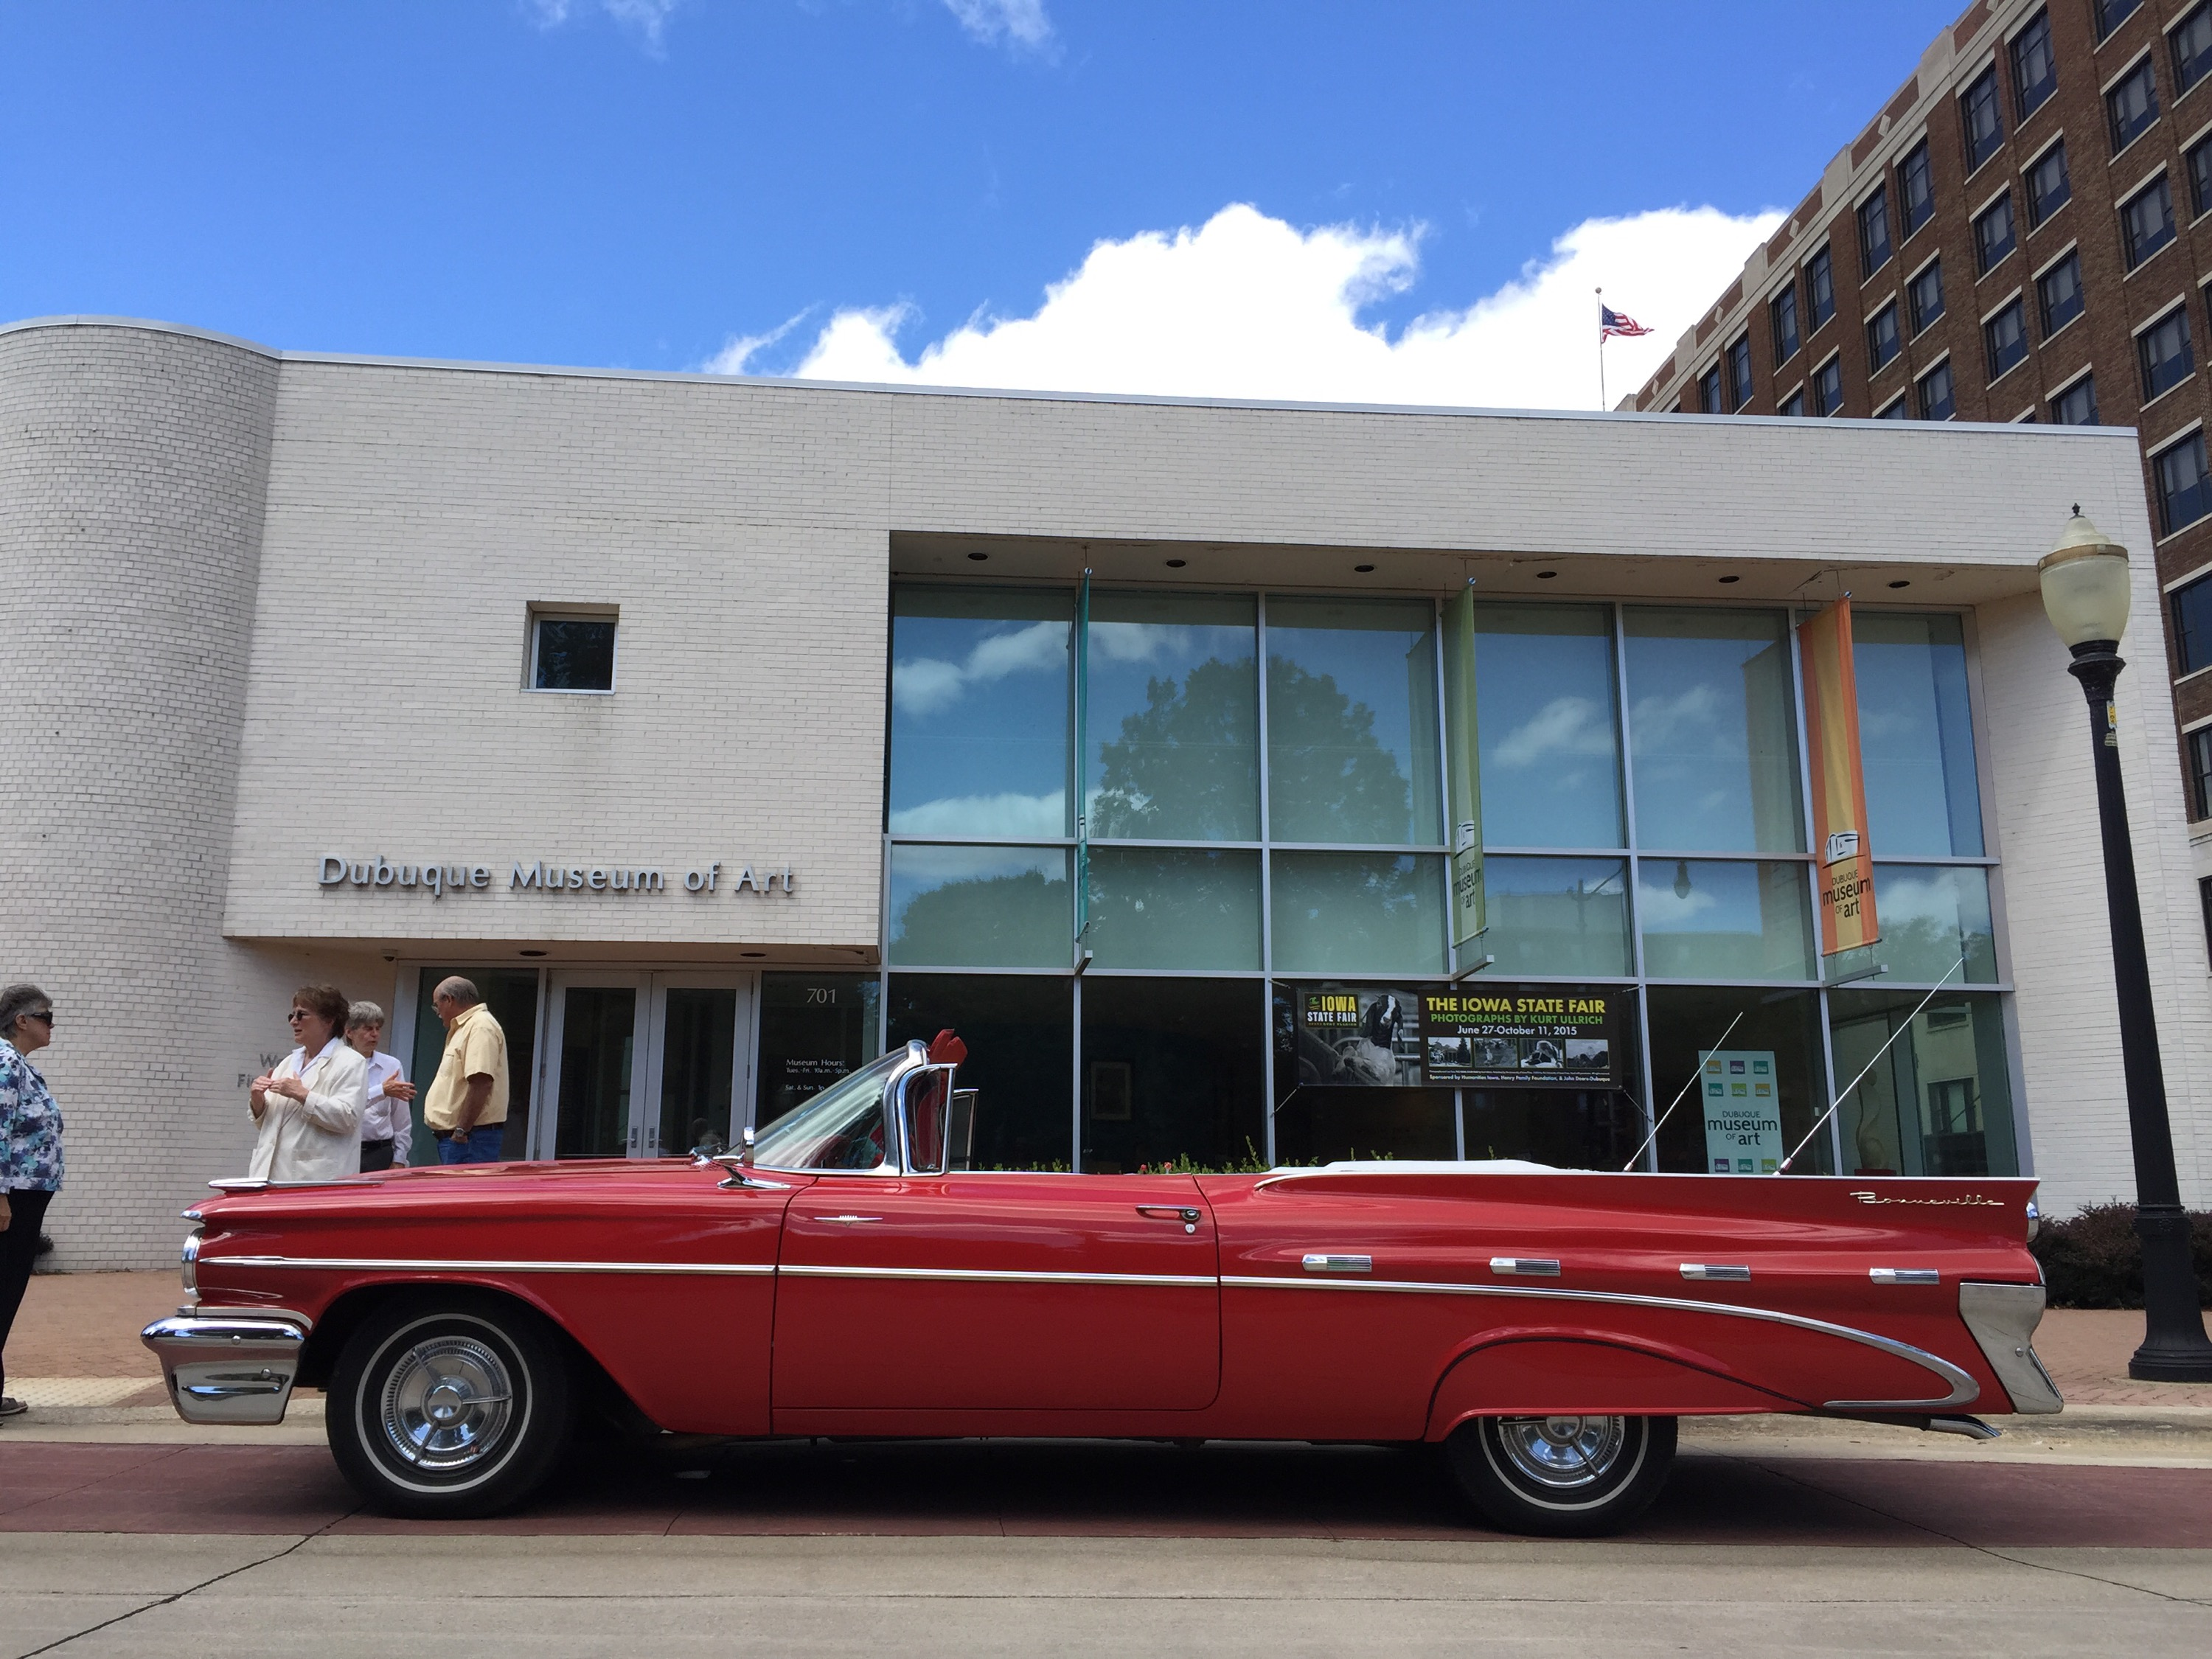 Images from Jaclyn Garlocks talk plus classic cars Dubuque